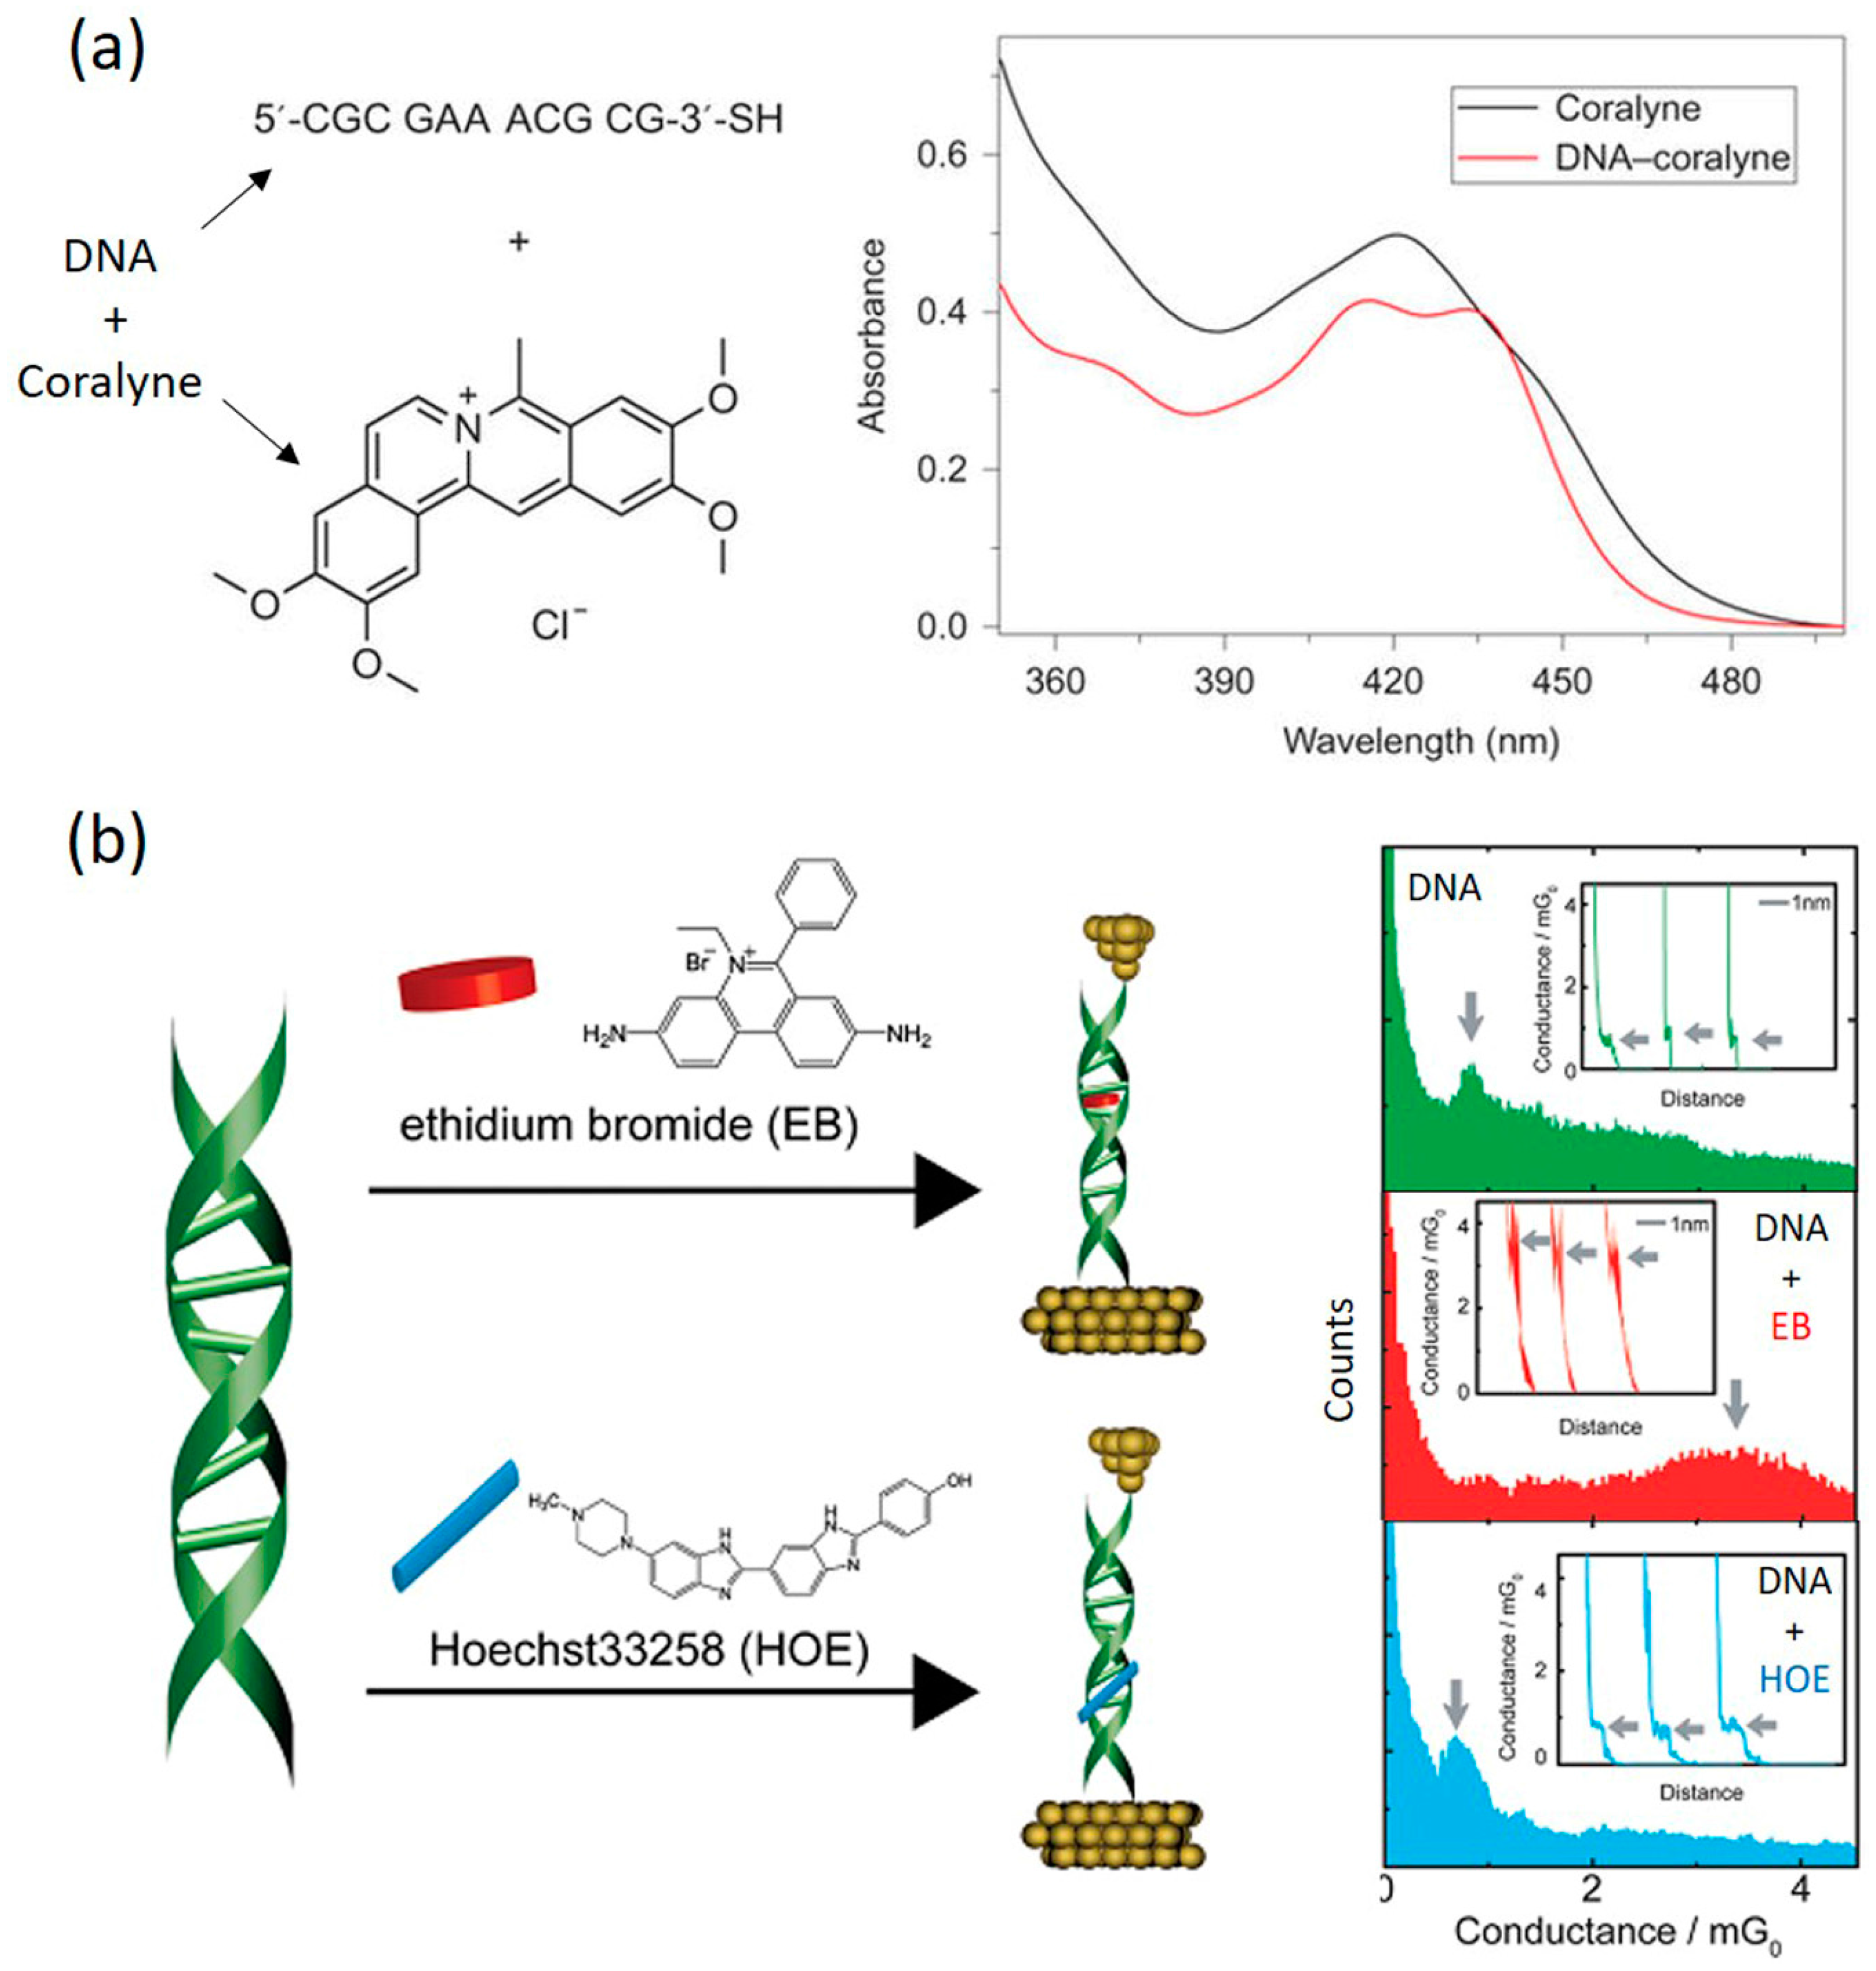 dna engineering properties and applications